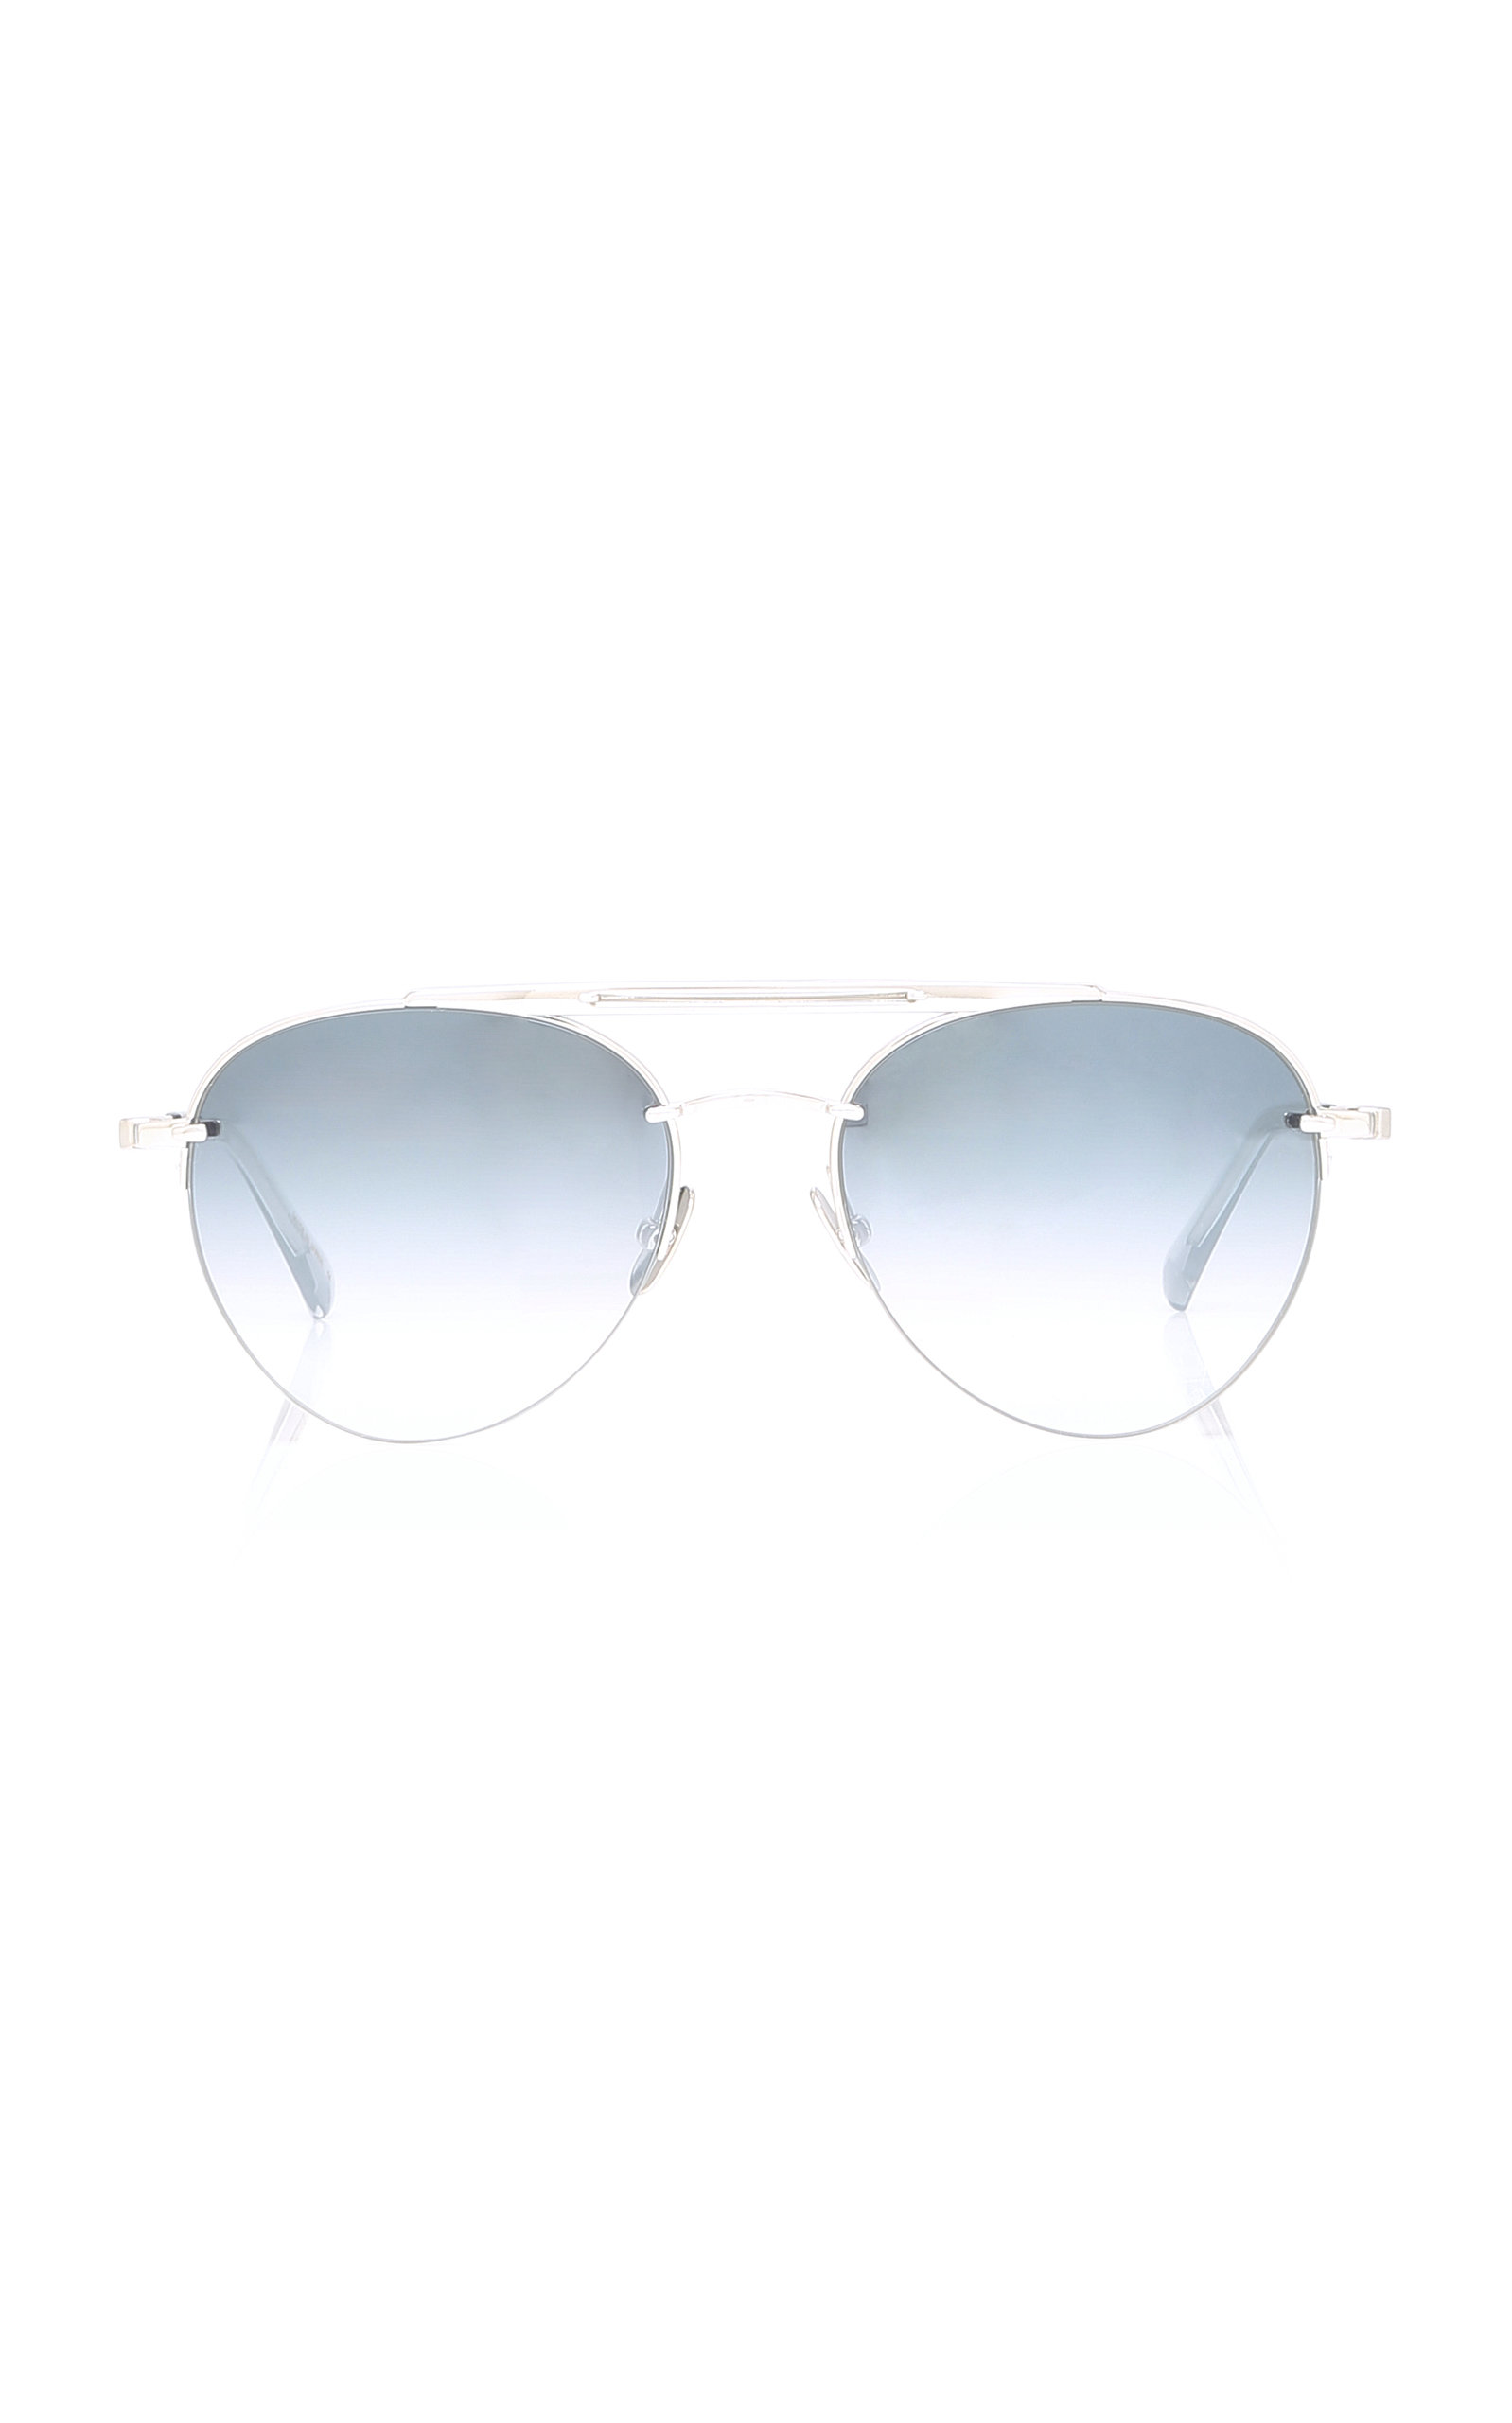 MR. LEIGHT Rodeo Platinum-Plated Aviator Sunglasses in Grey